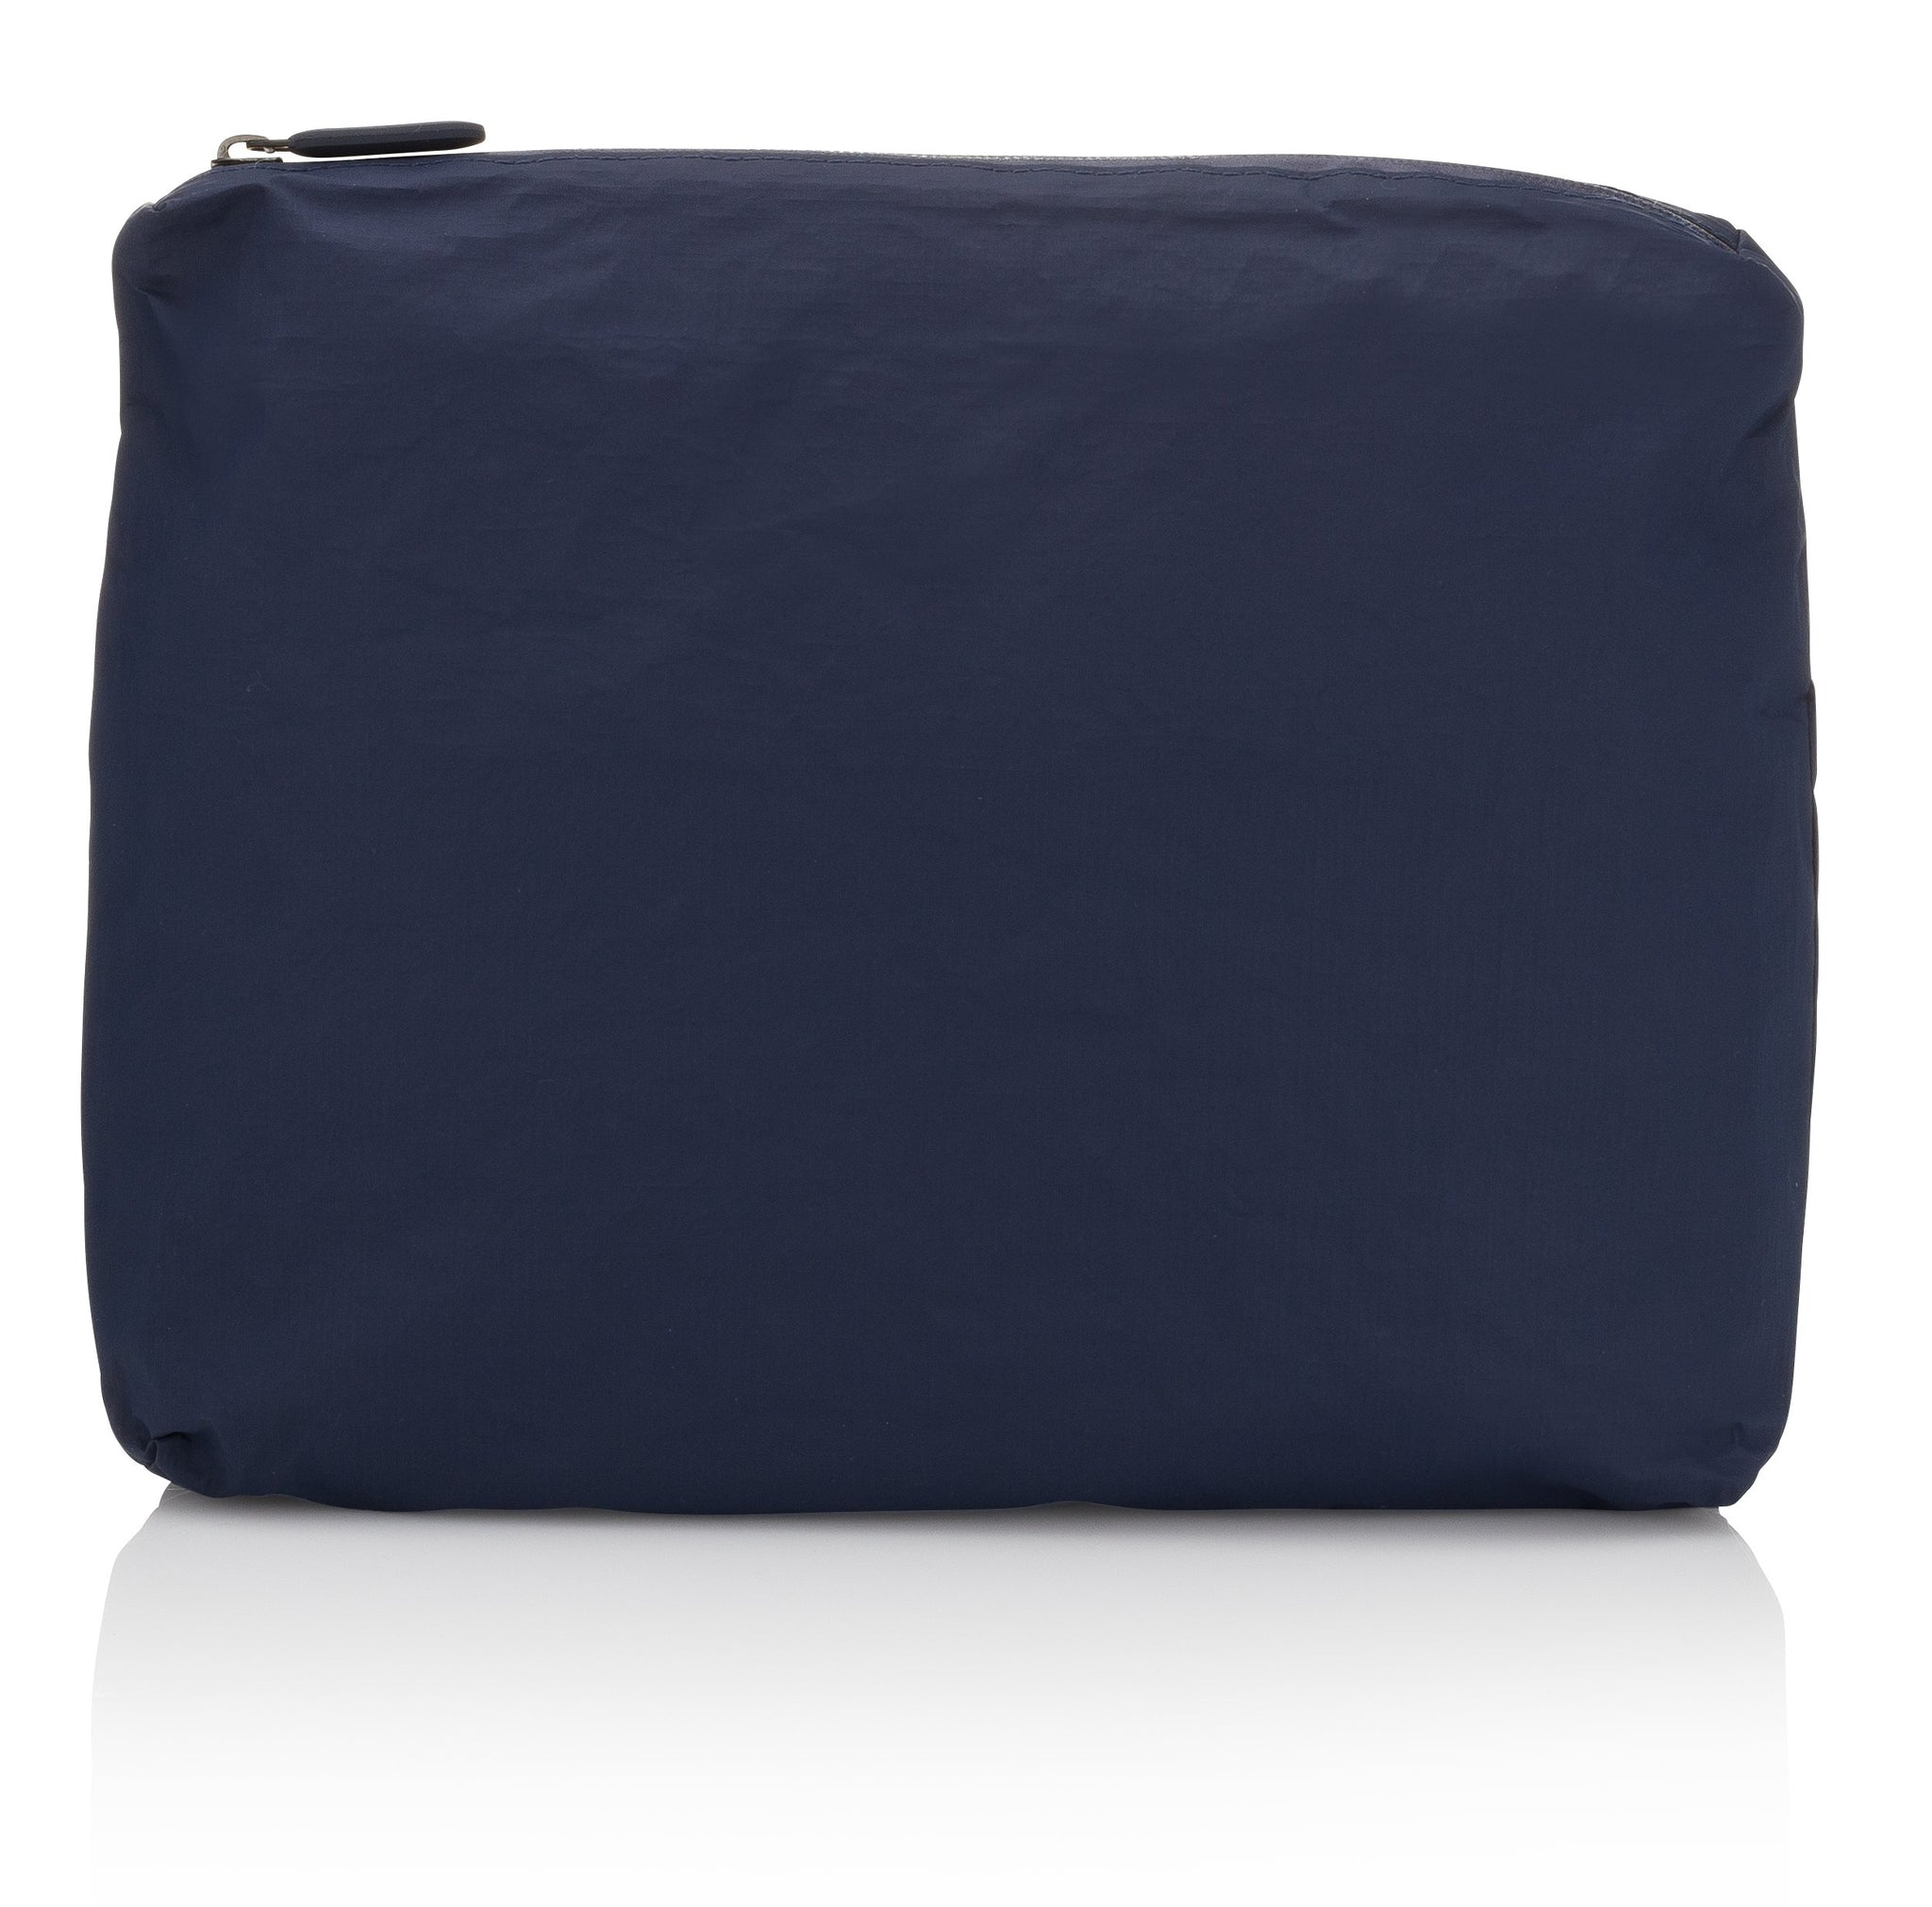 Medium Pack - Navy